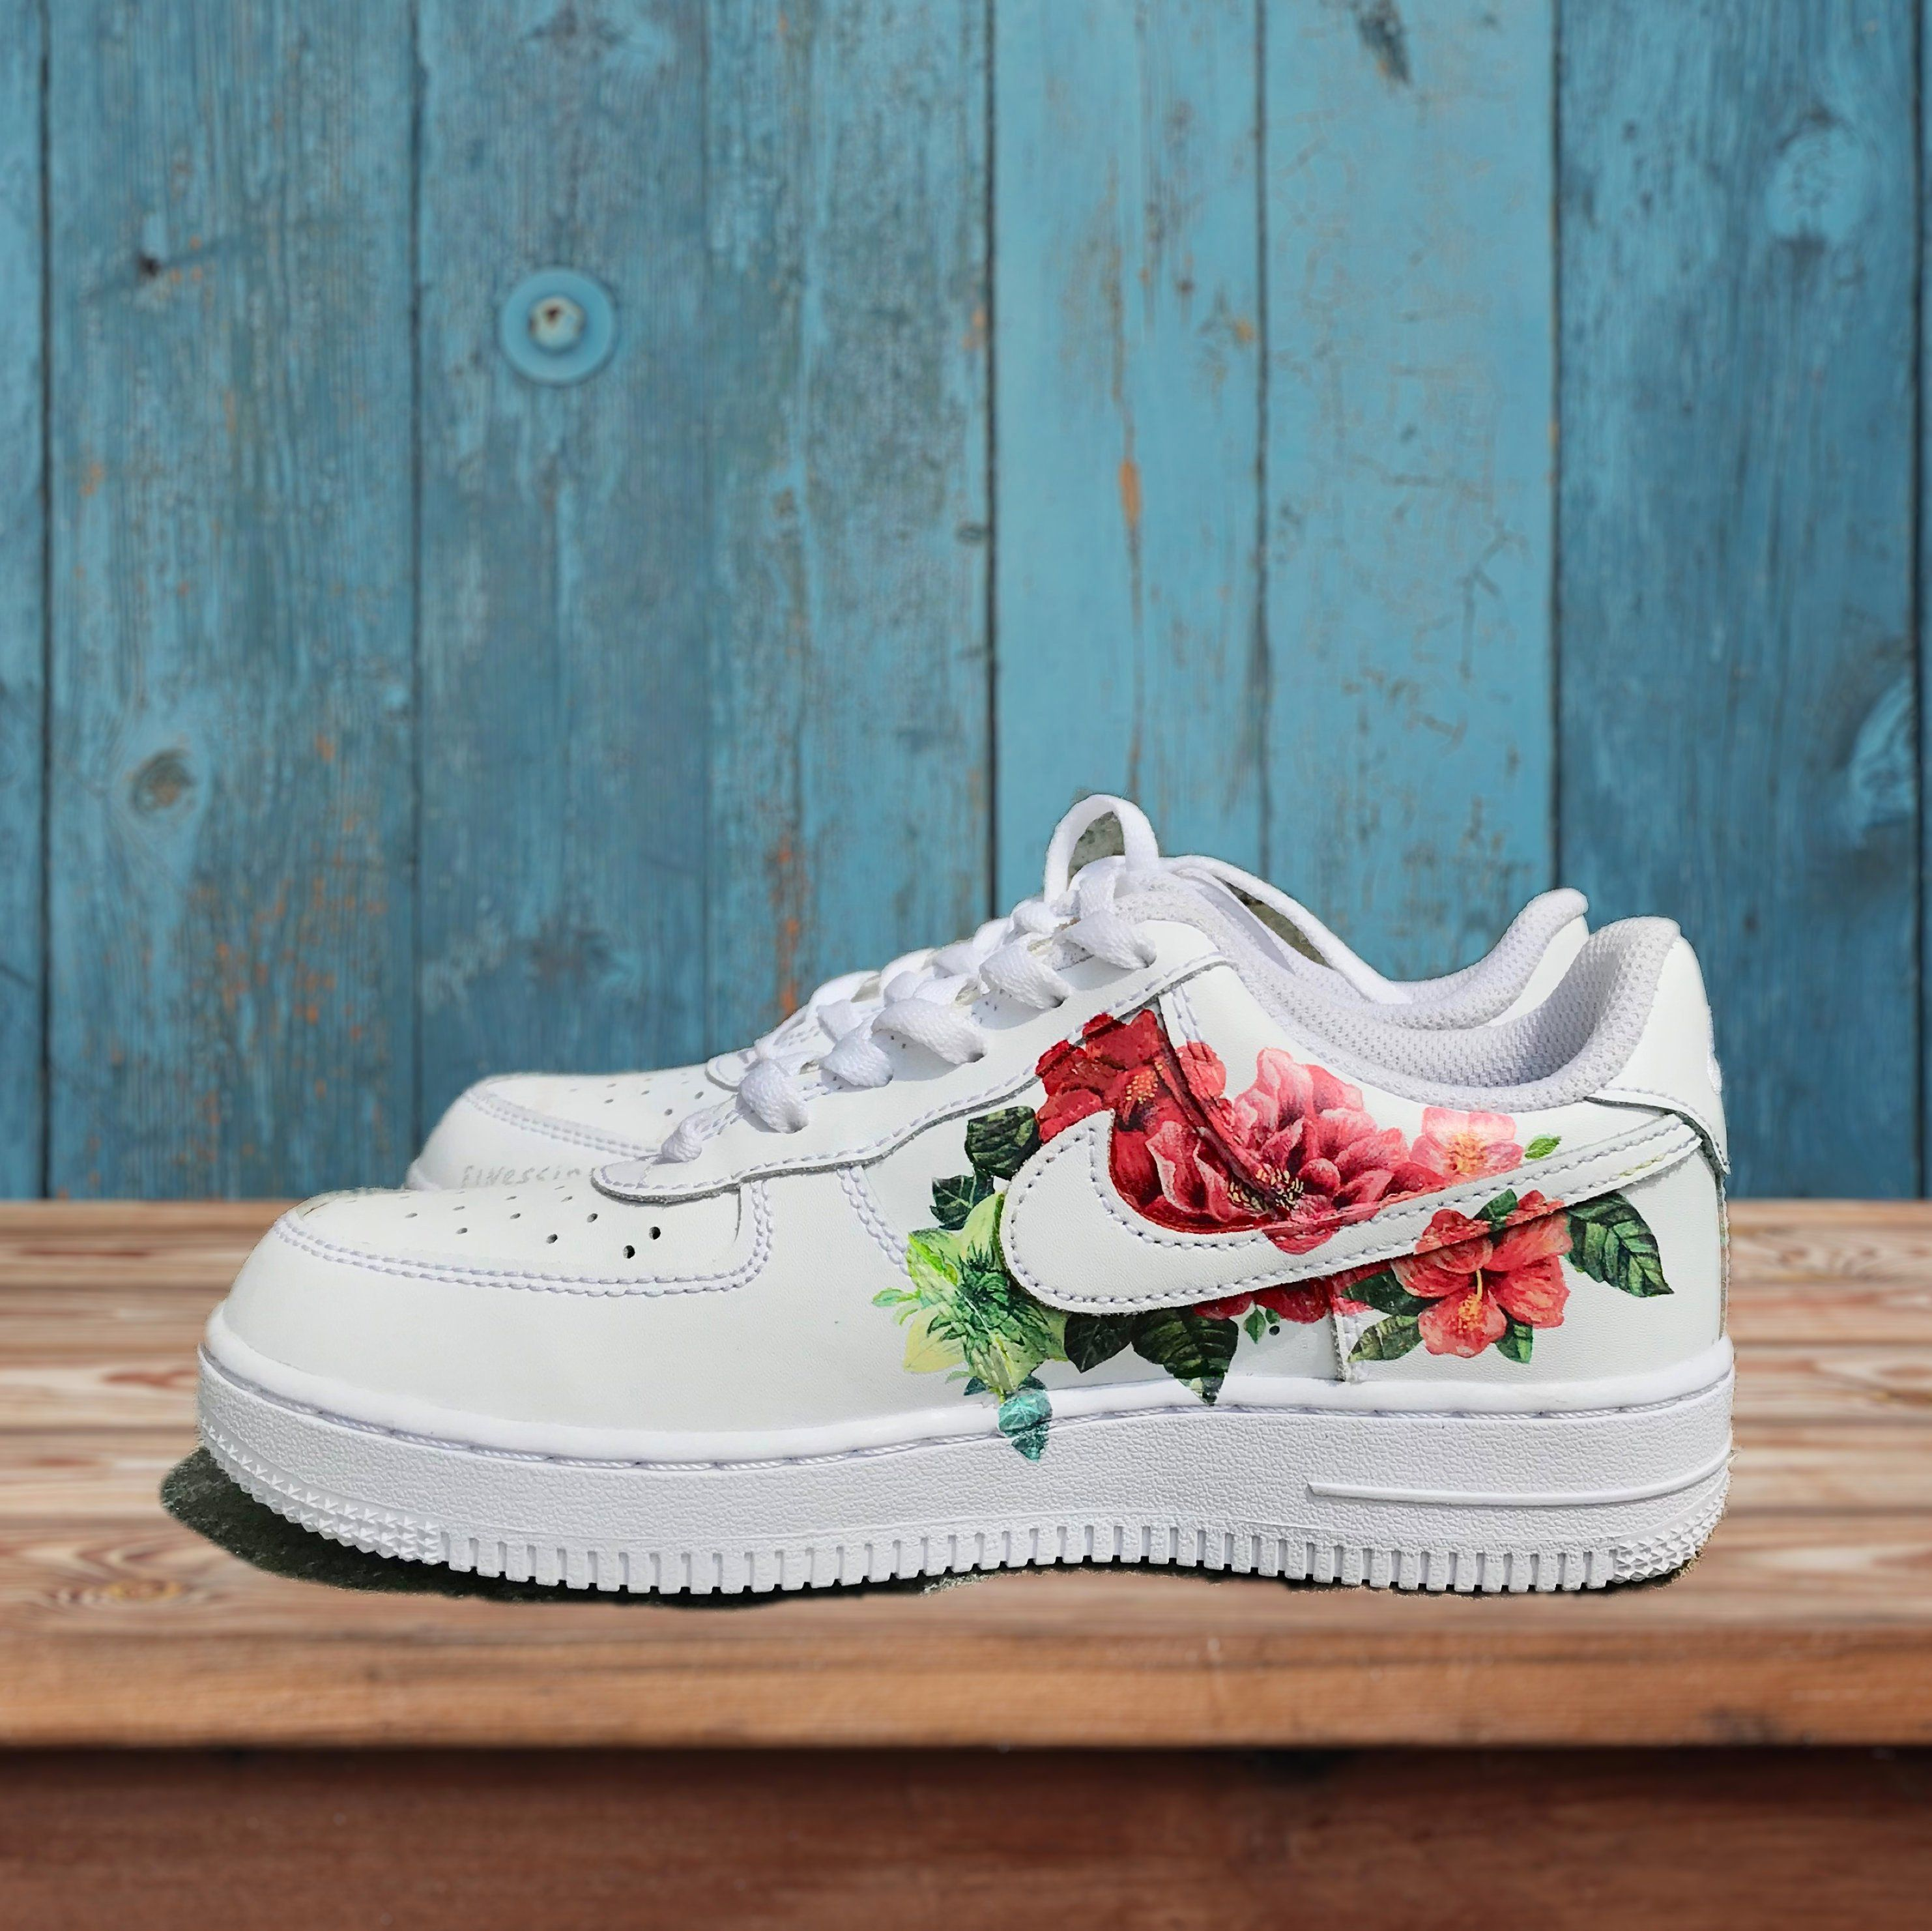 Create your own custom sneakers Nike shoes air force